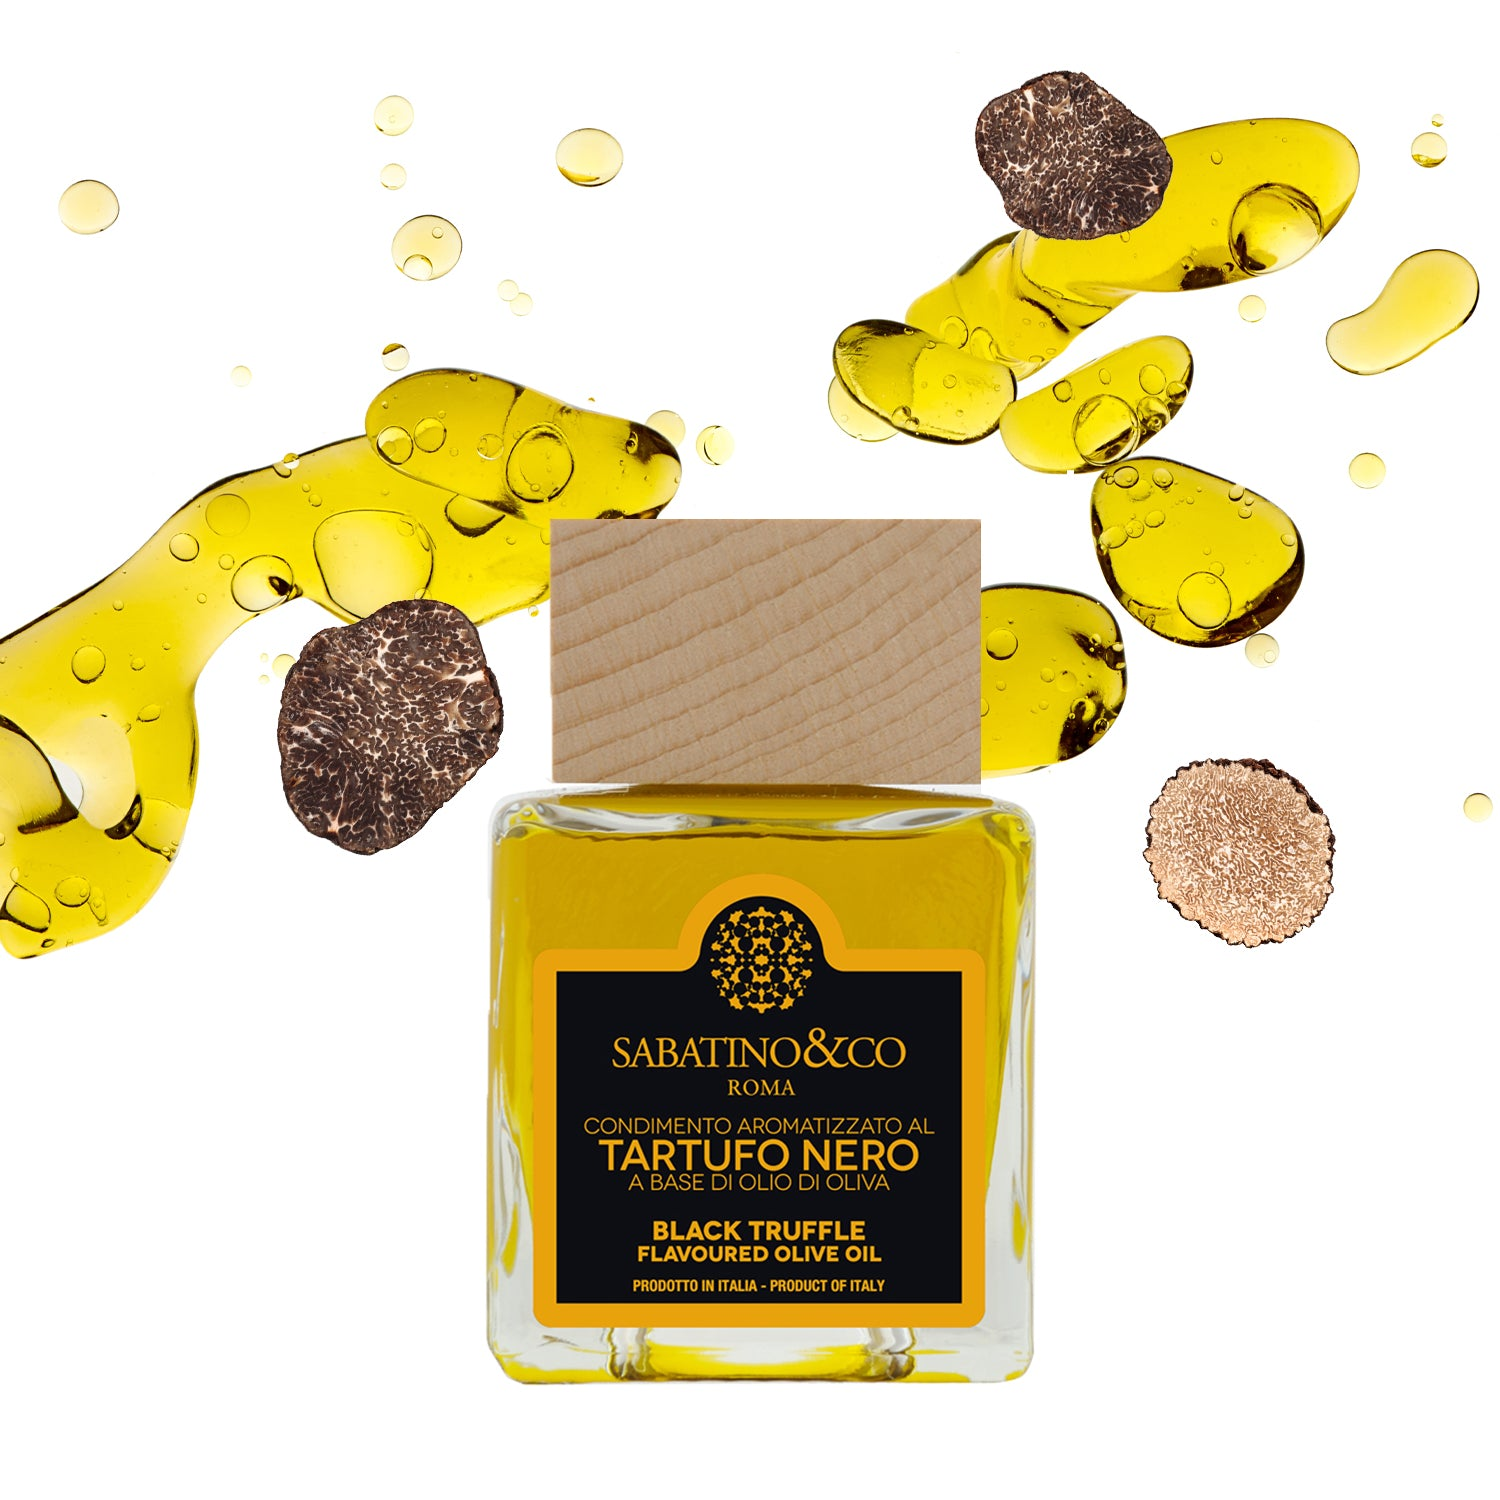 PREMIUM BLACK TRUFFLE INFUSED OIL - 100TH YEAR COLLECTION - Sabatino Truffles